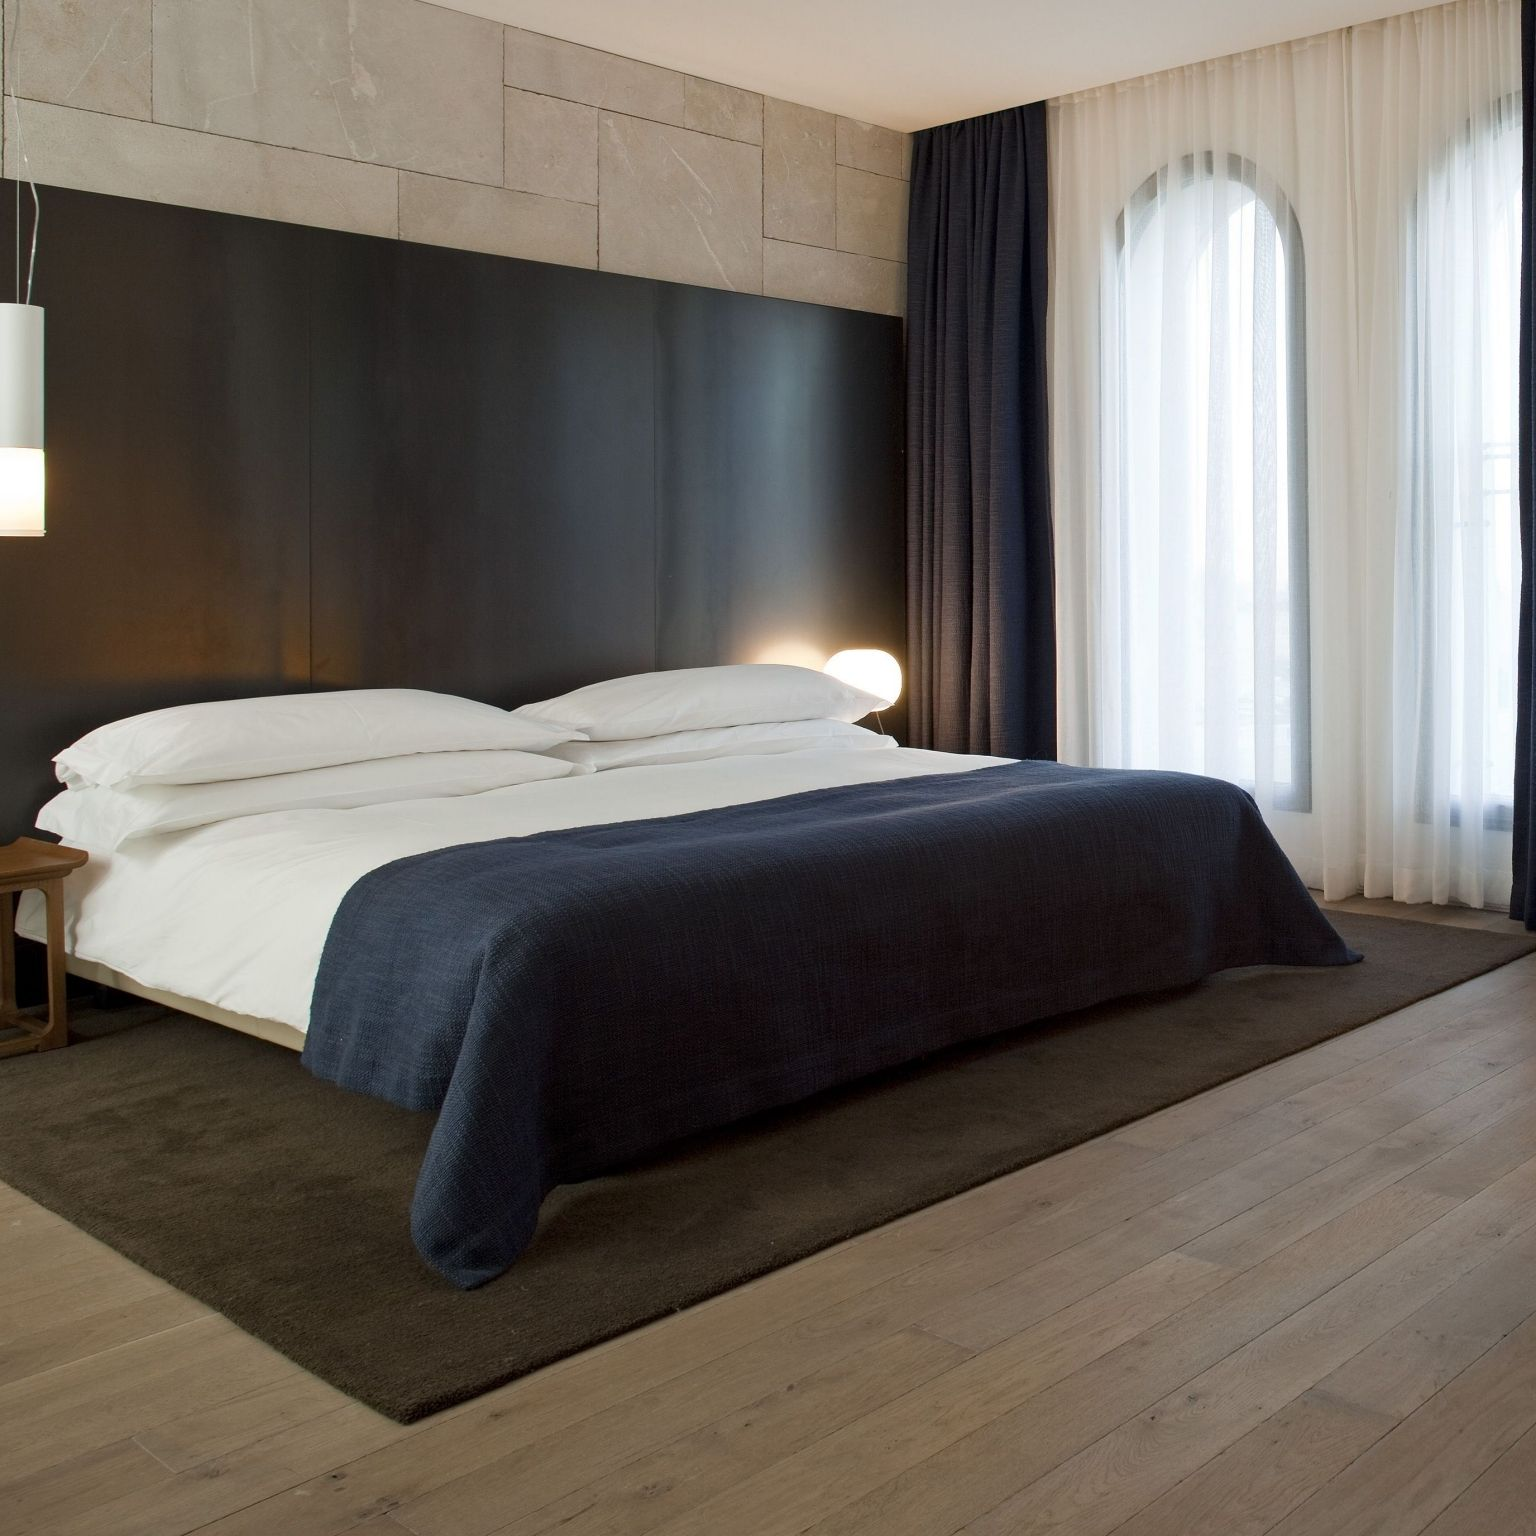 Executive Room | Mamilla Hotel